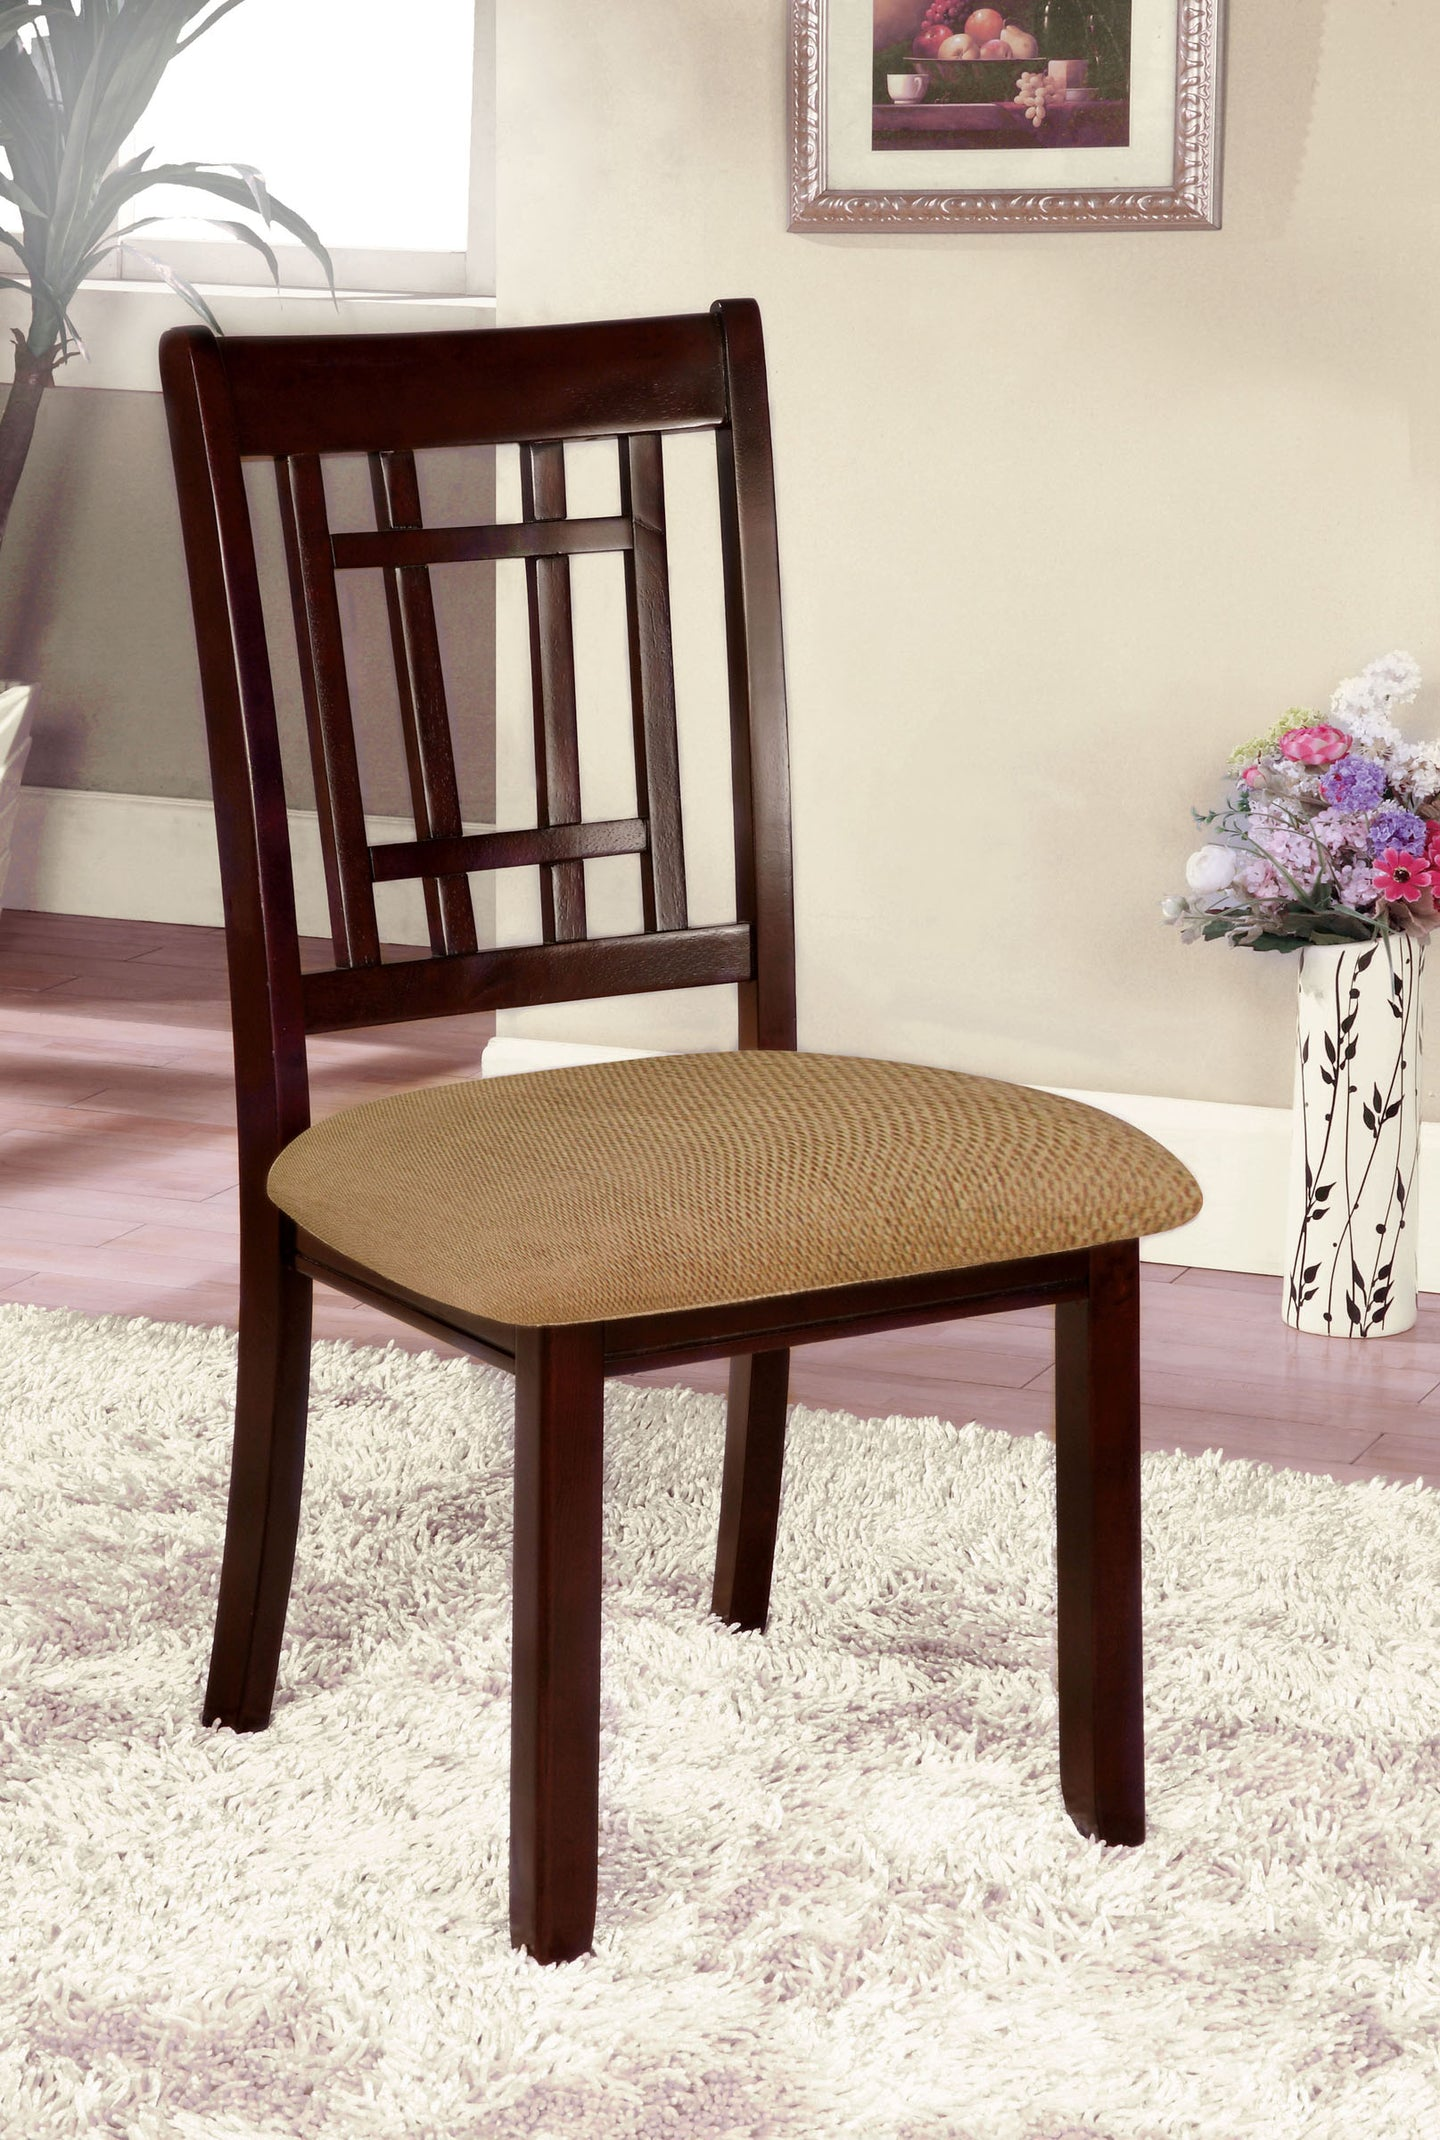 Furniture of America Central Park I Dark Cherry Finish 2 Piece Side Chair